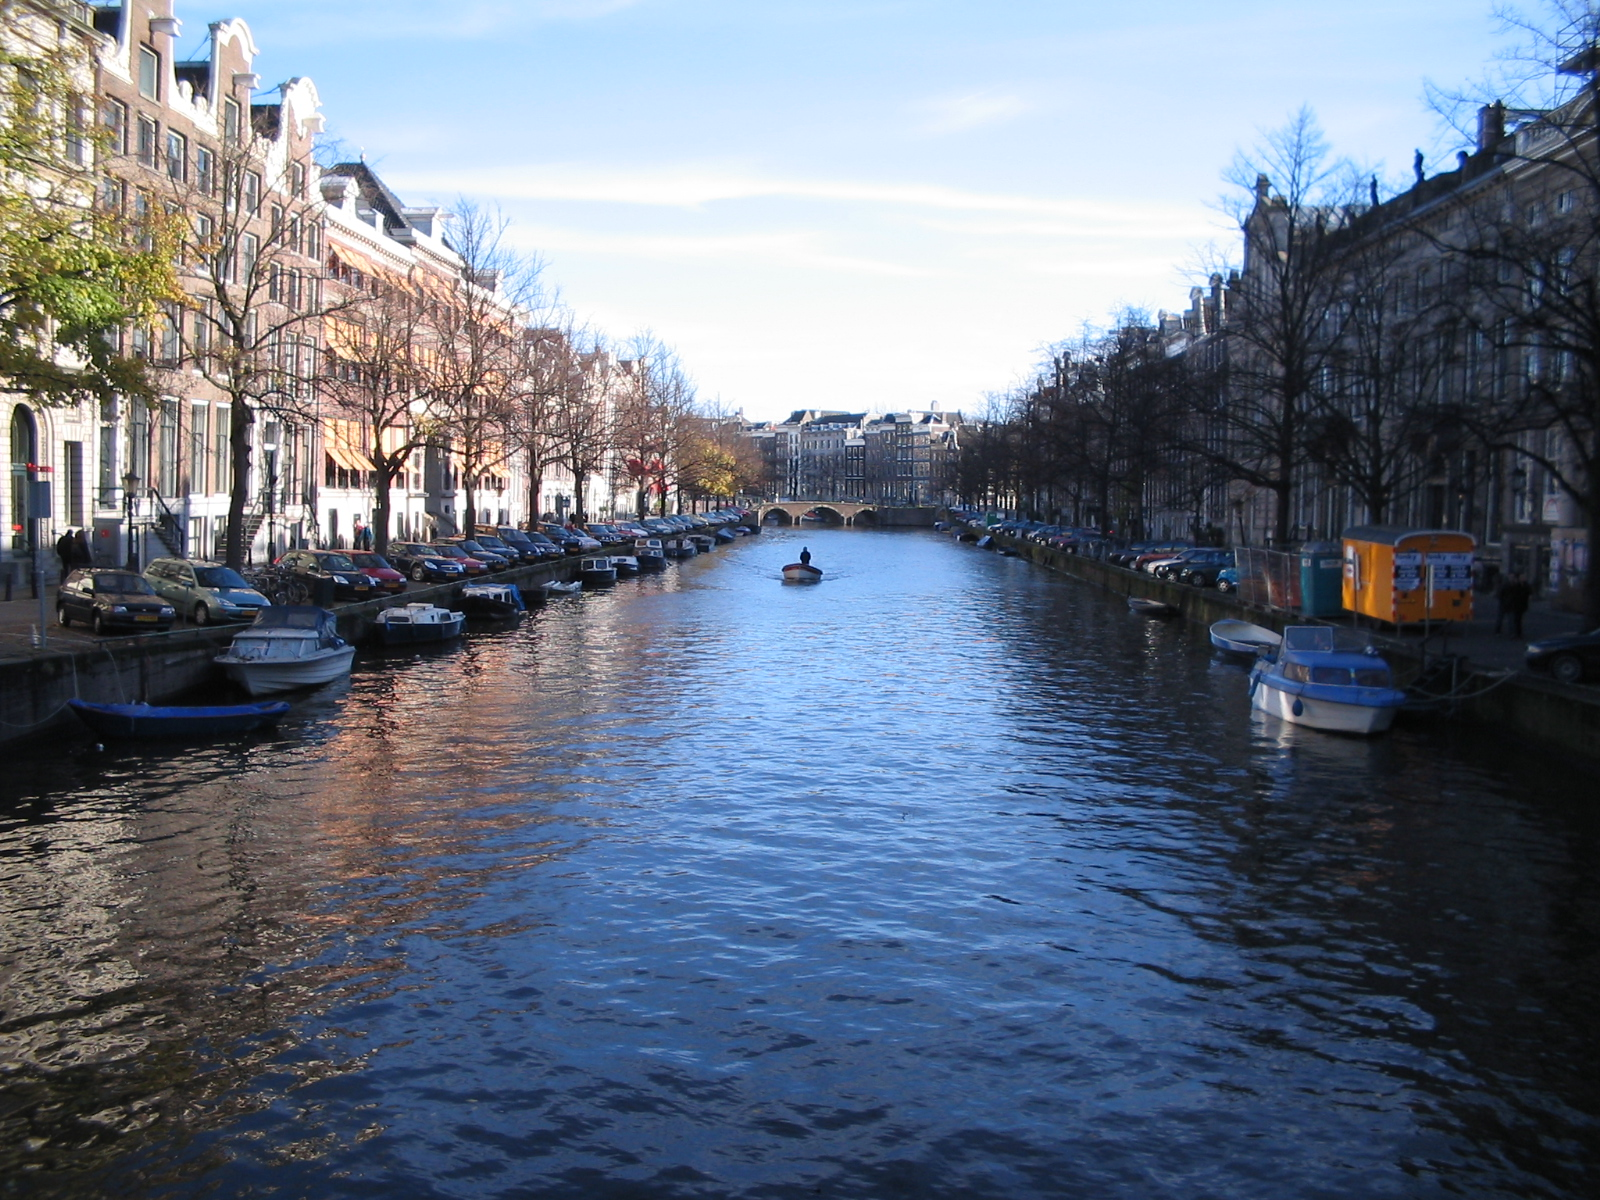 water runs through every part of Amsterdam